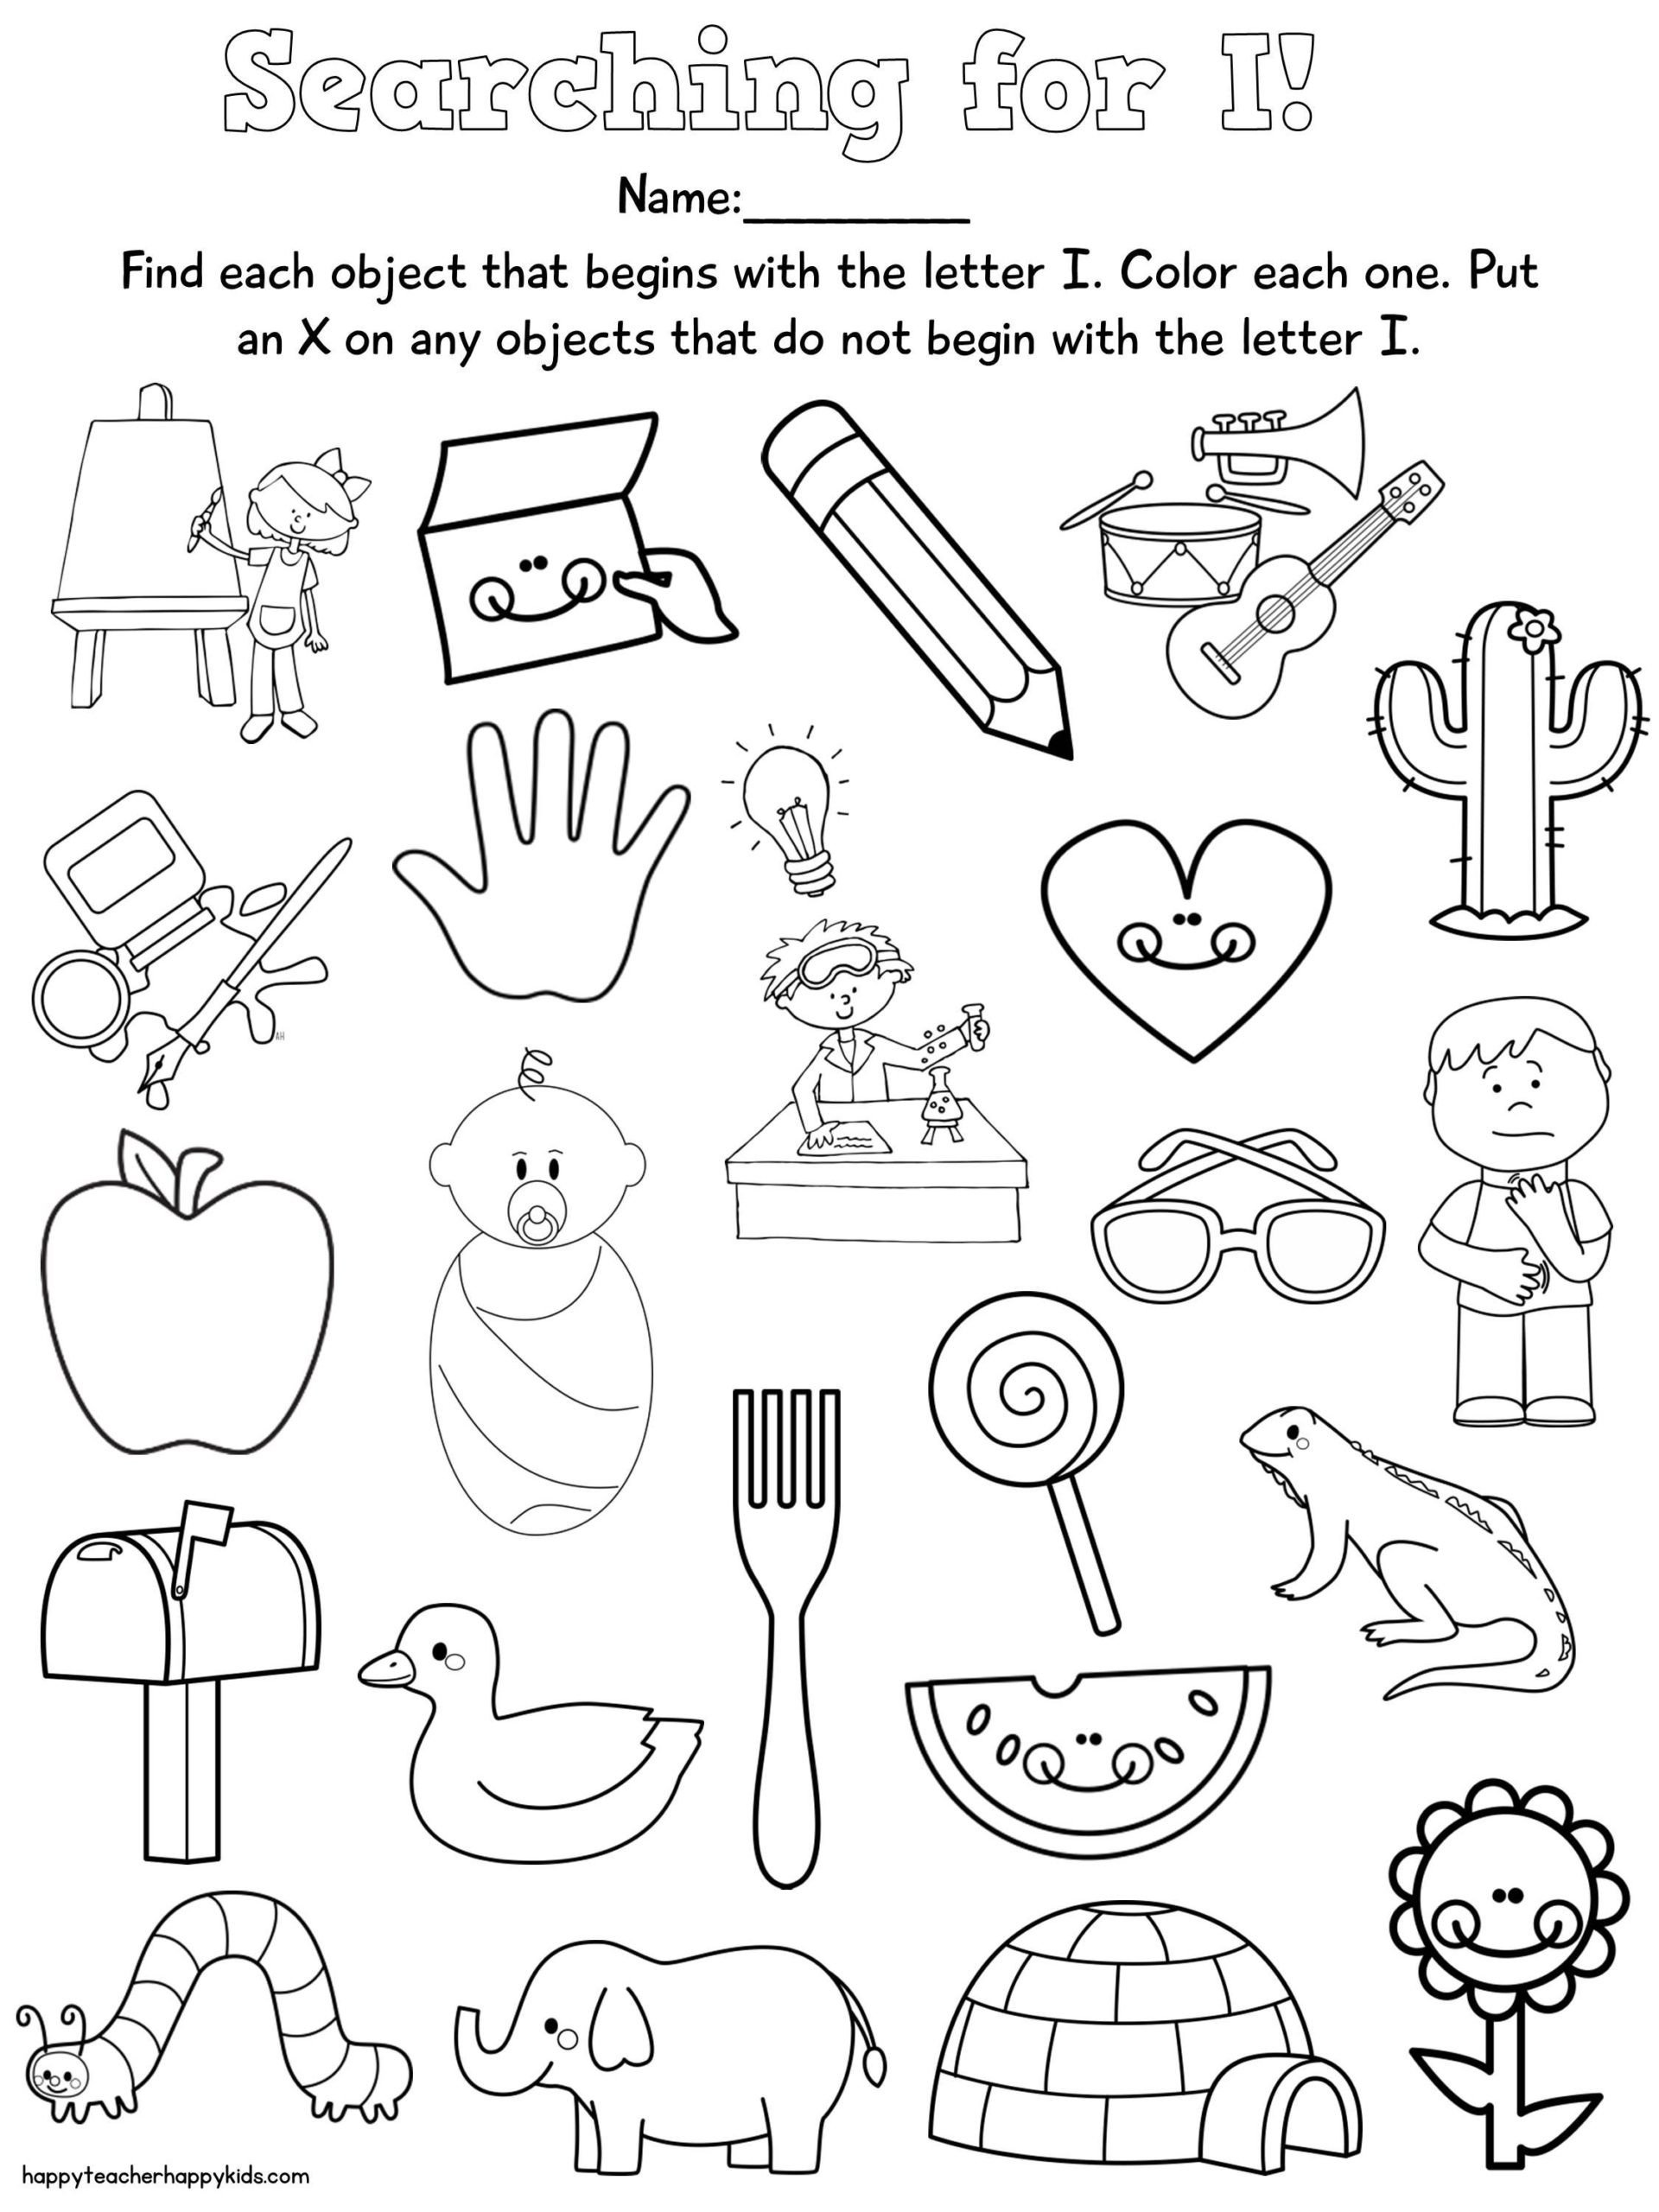 Th sound Worksheets Kindergarten Letter Free Preschool Learning Letters Nursery Rhymes Short